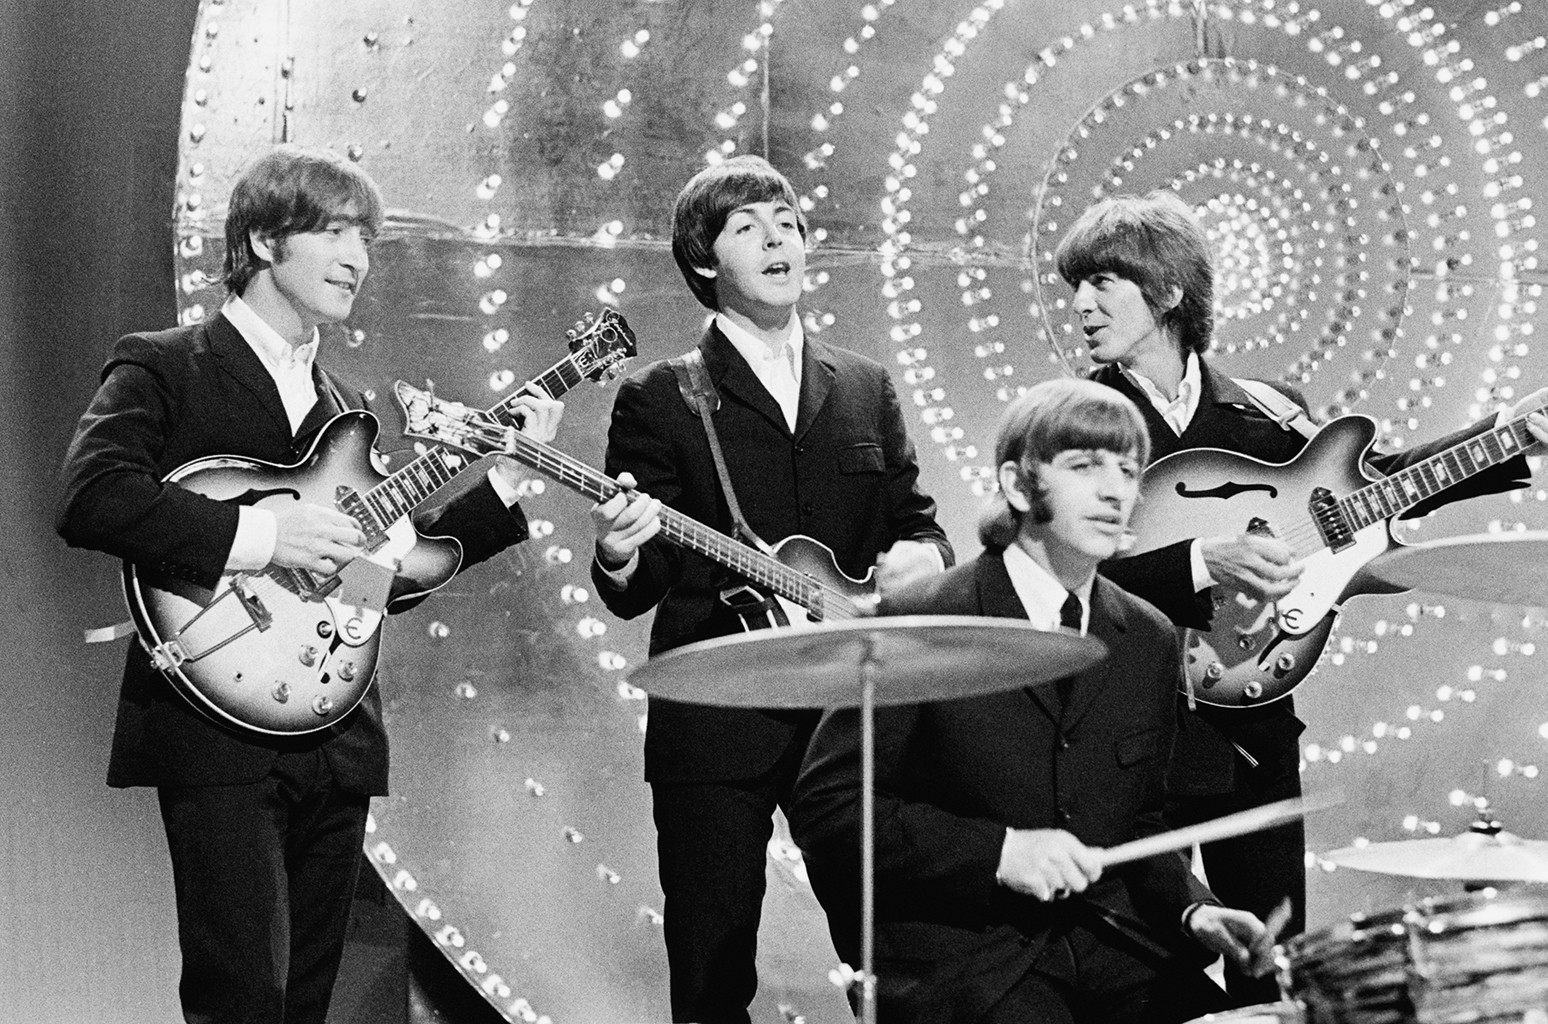 The Beatles perform in London